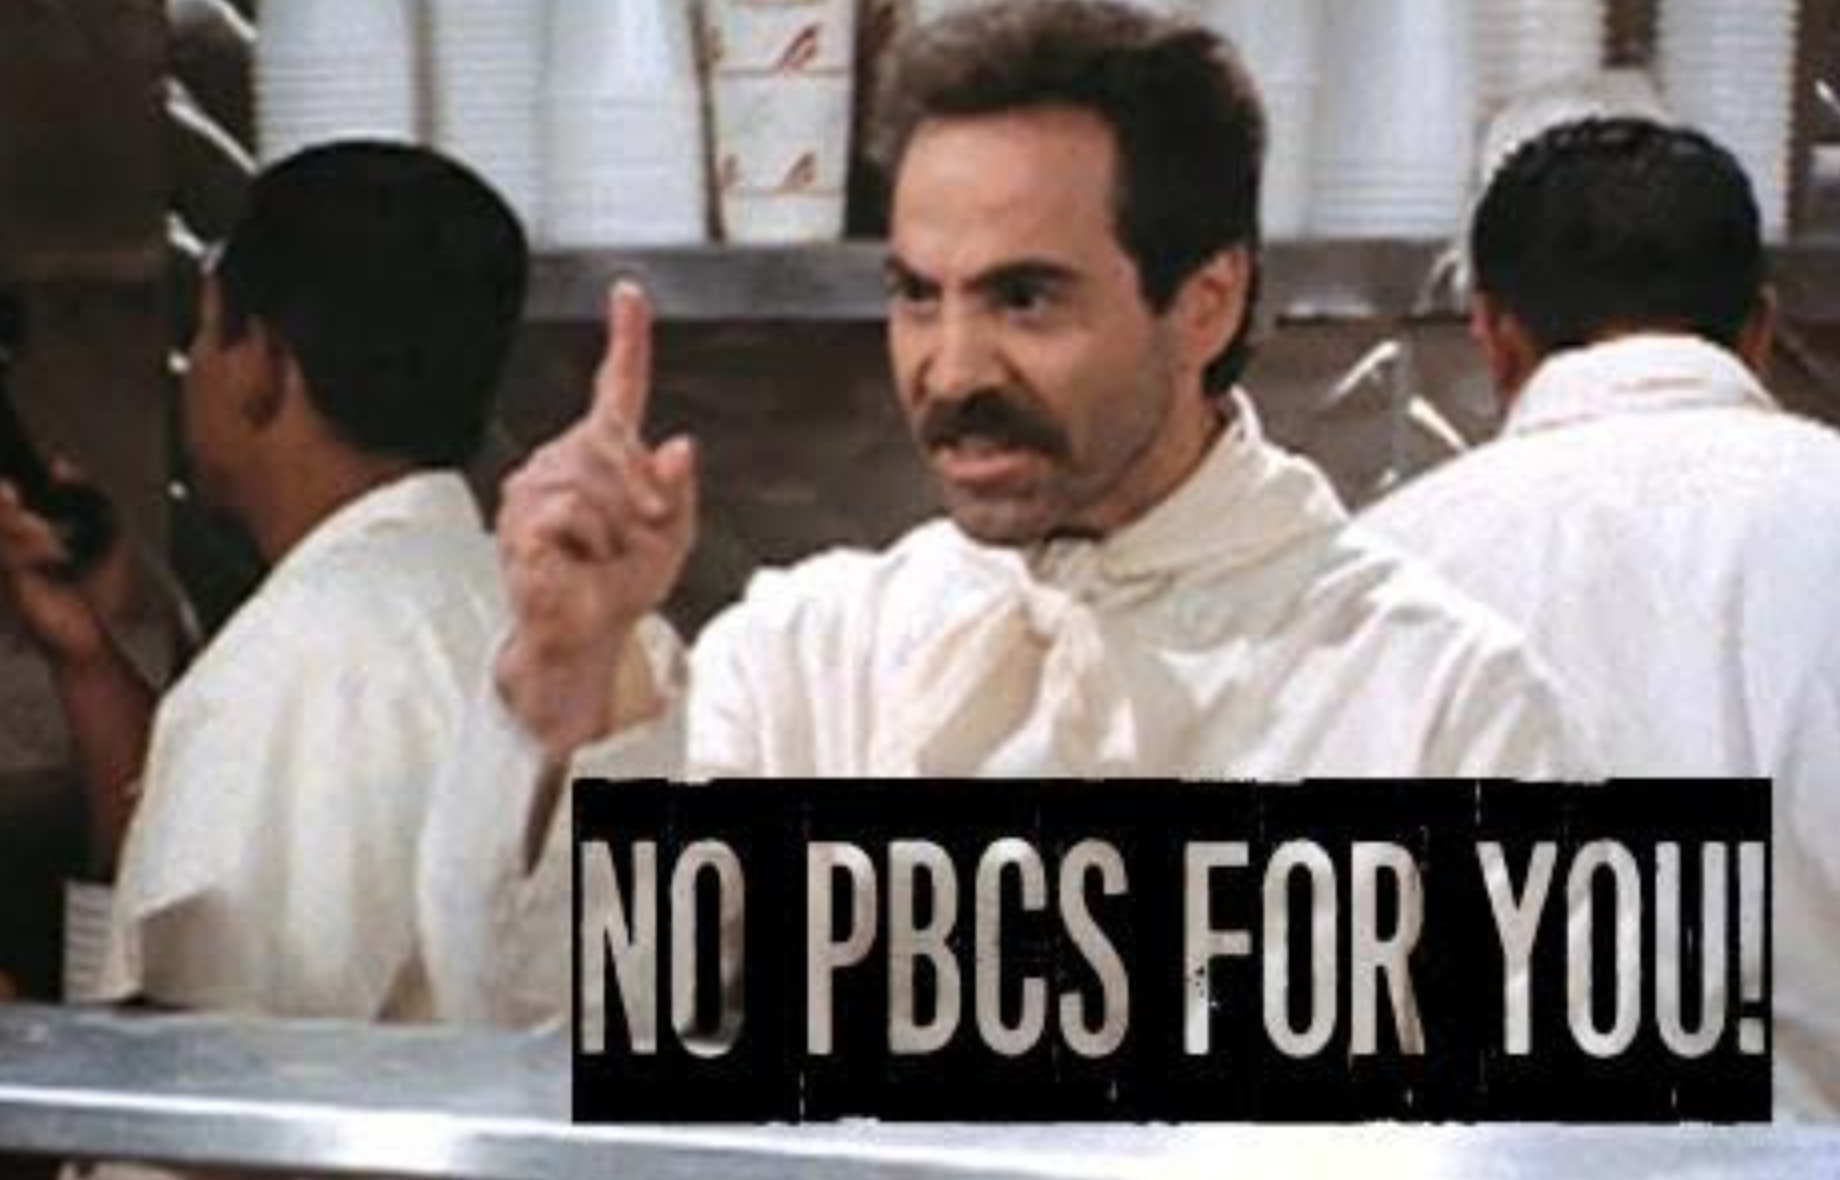 PBCS PITA – here's the latest Rumours and Facts